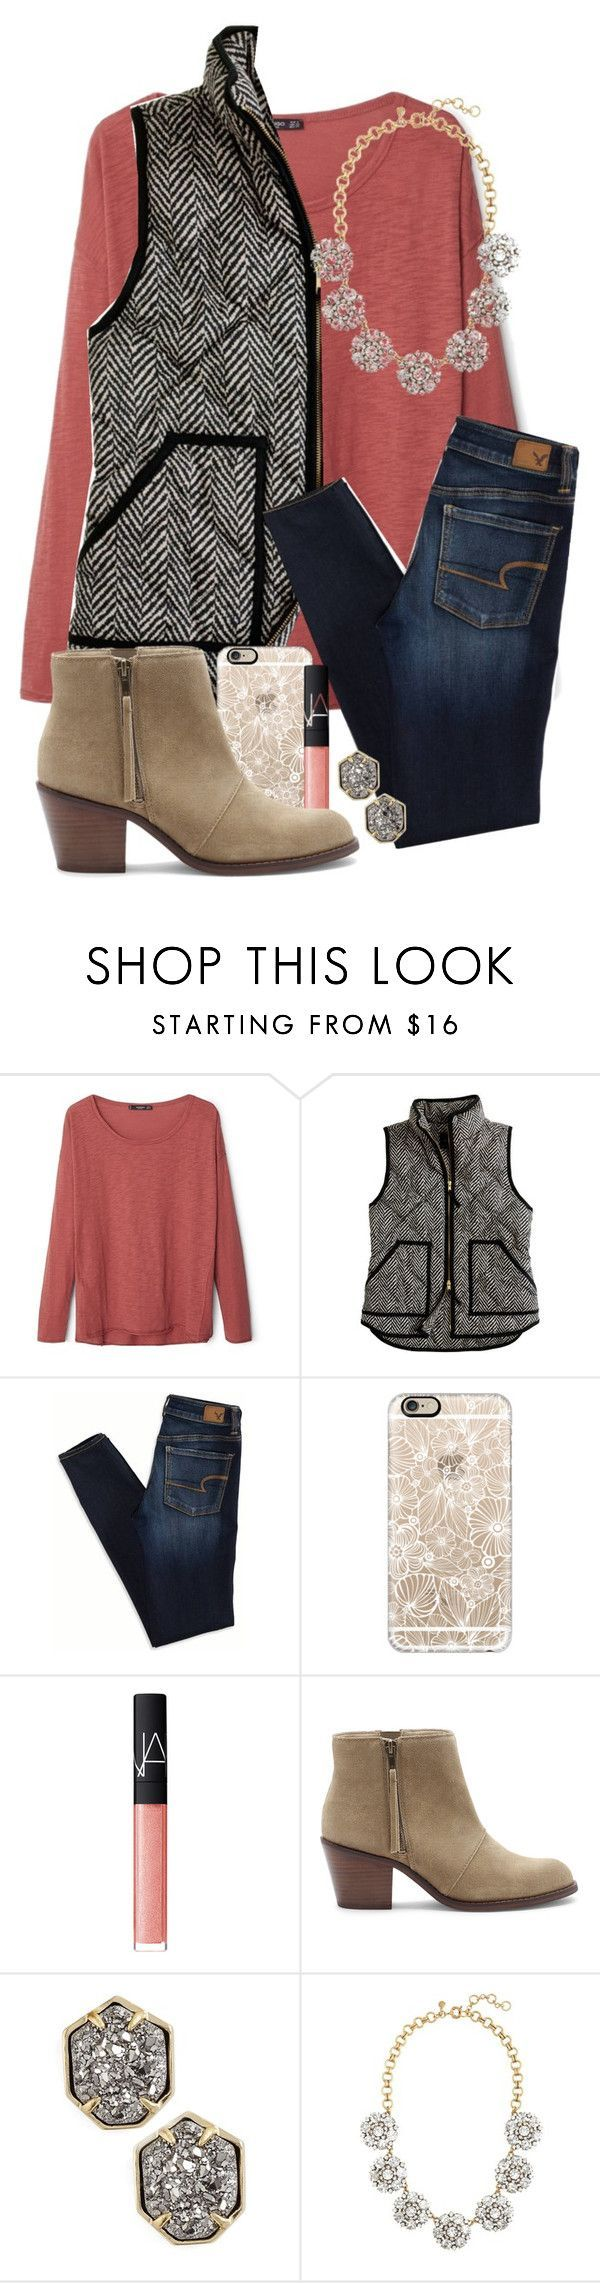 """""""Want this vest"""" by hgw8503 ❤️ liked on Polyvore featuring MANGO, J.Crew, American Eagle Outfitters, Casetify, NARS Cosmetics, Sole Society, Kendra Scott, women's clothing, women and female"""